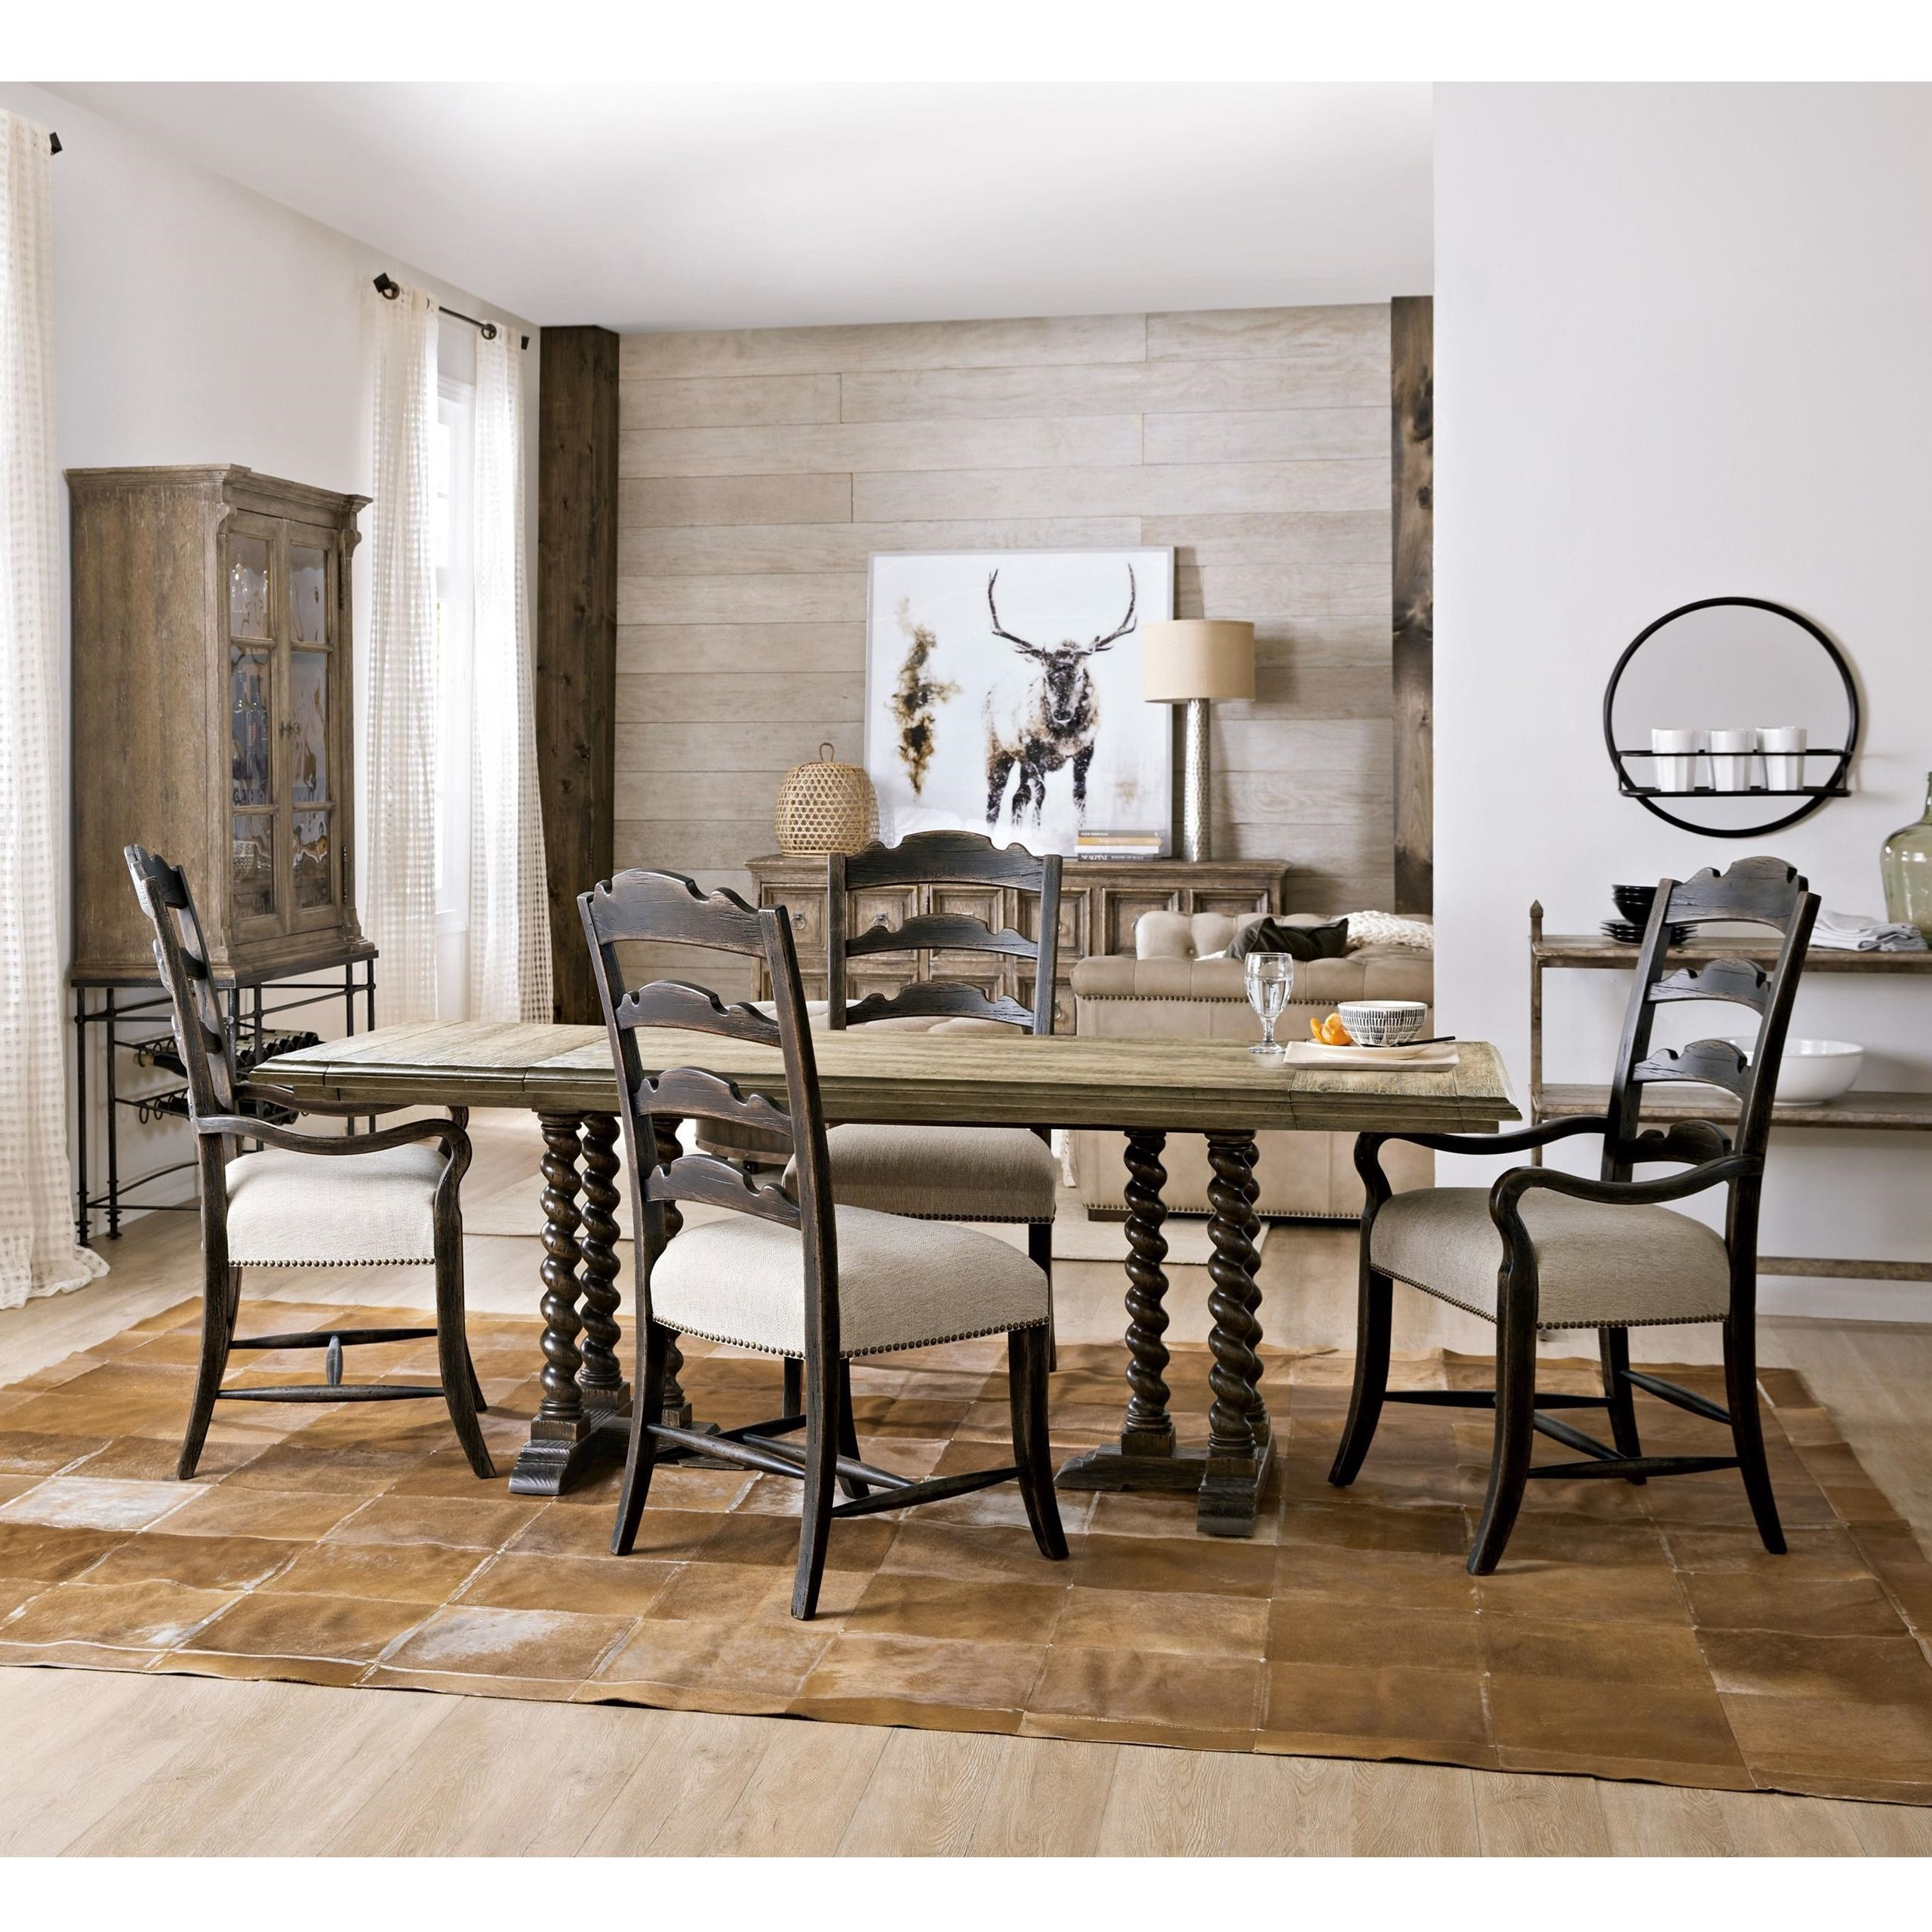 La Grange 5-Piece Table and Chair Set by Hooker Furniture at Miller Waldrop Furniture and Decor